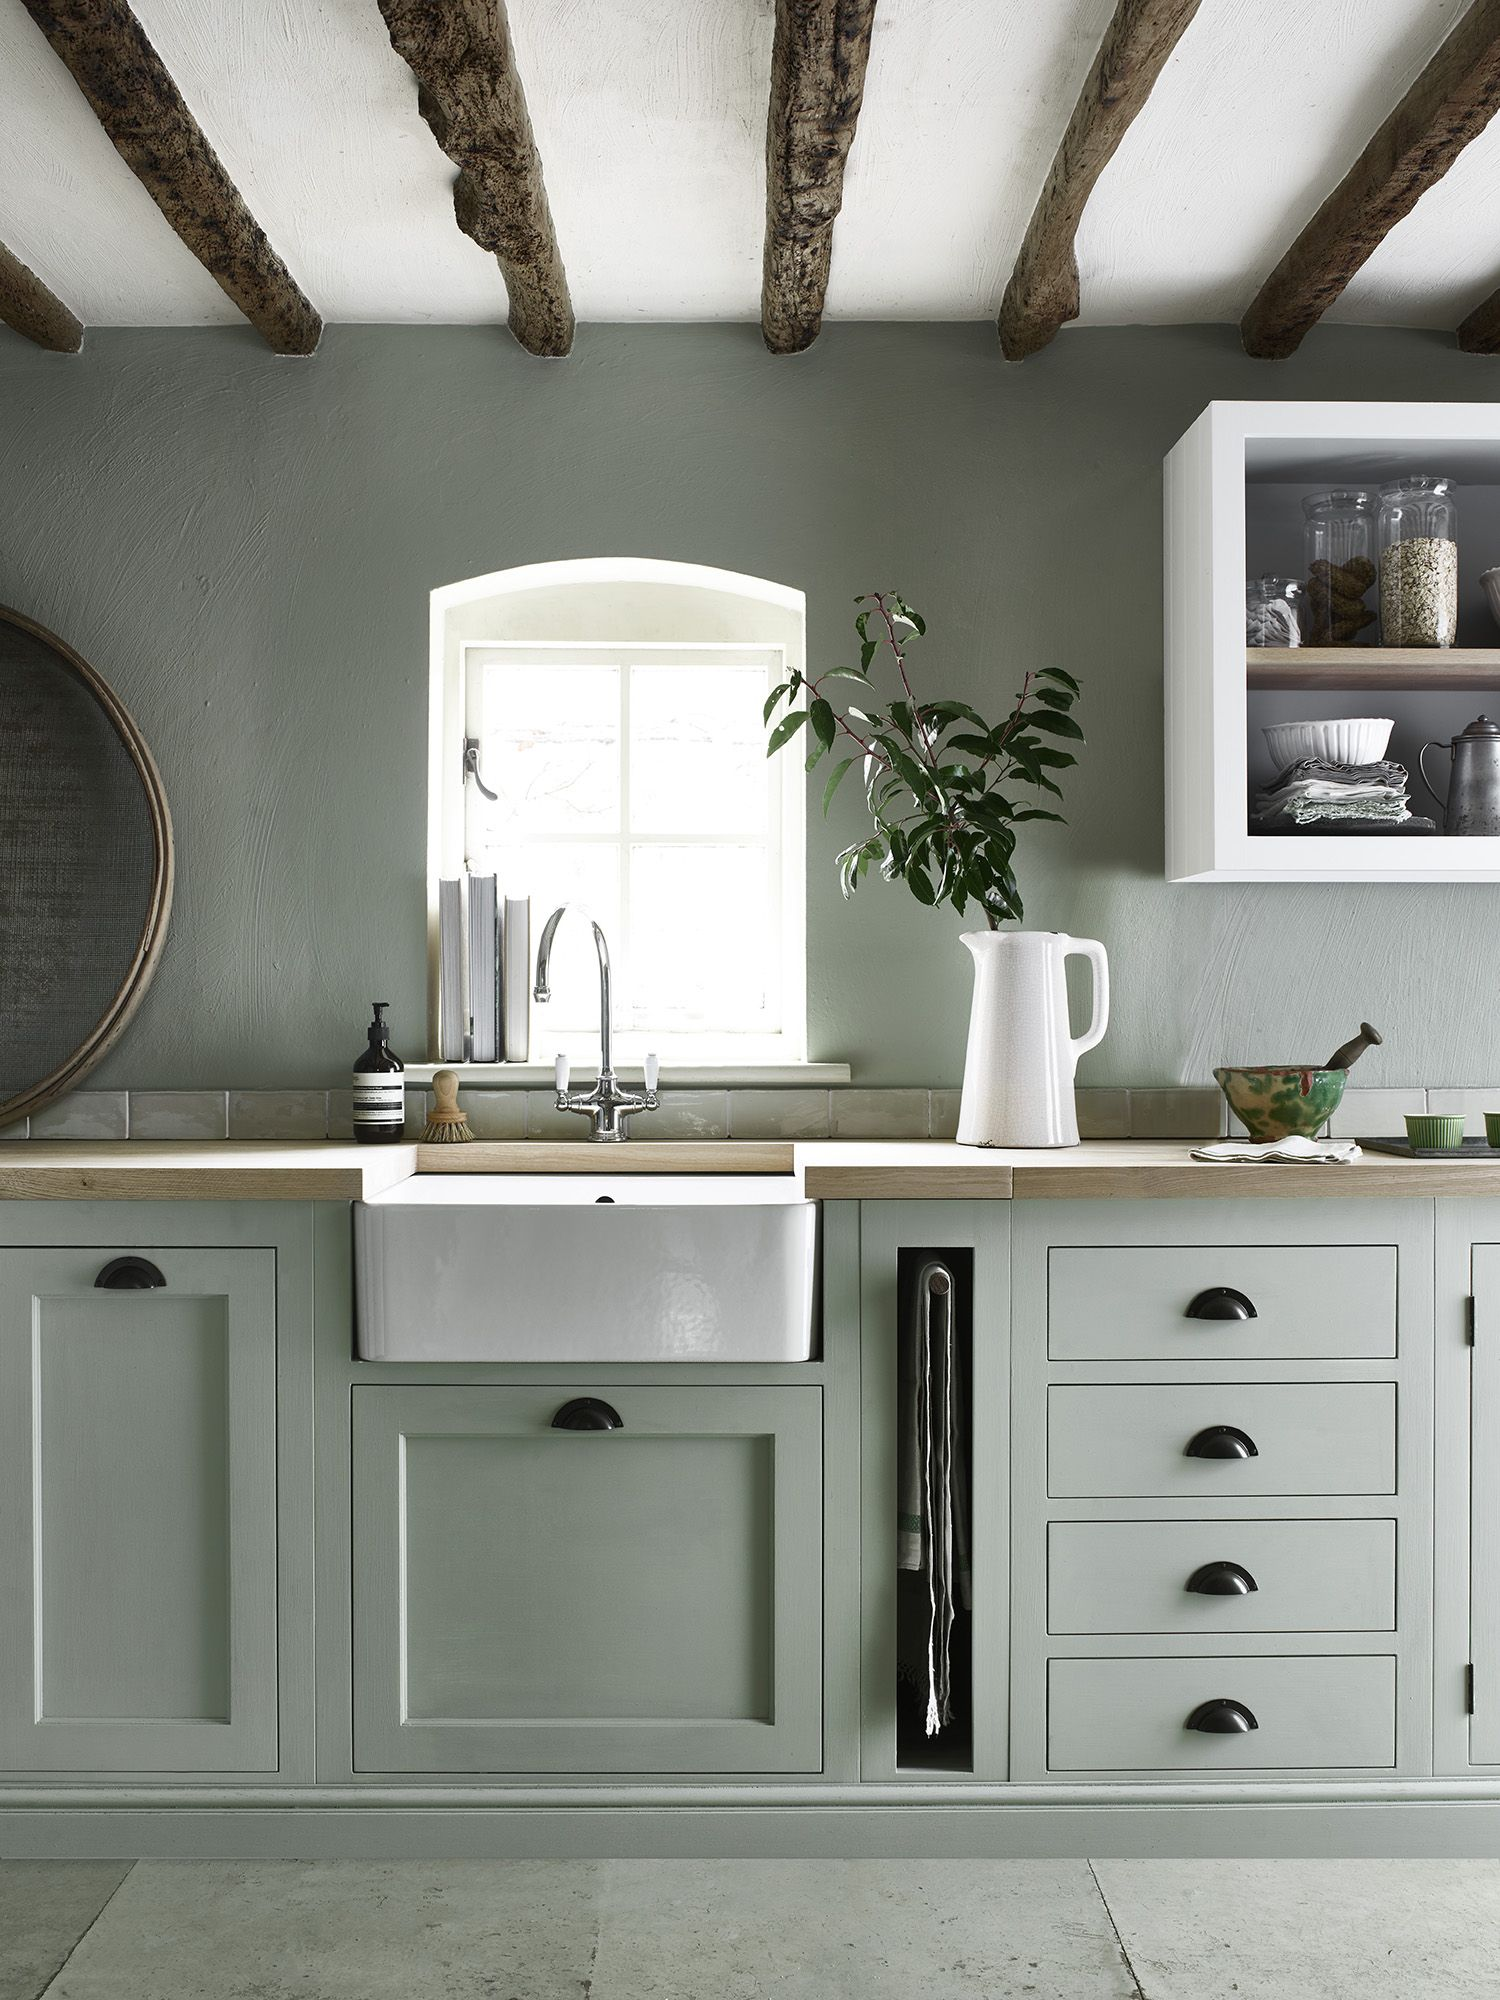 Henley Kitchen Hand Painted In Sage Great Idea For Pull Out Towel Rack Next To Sink